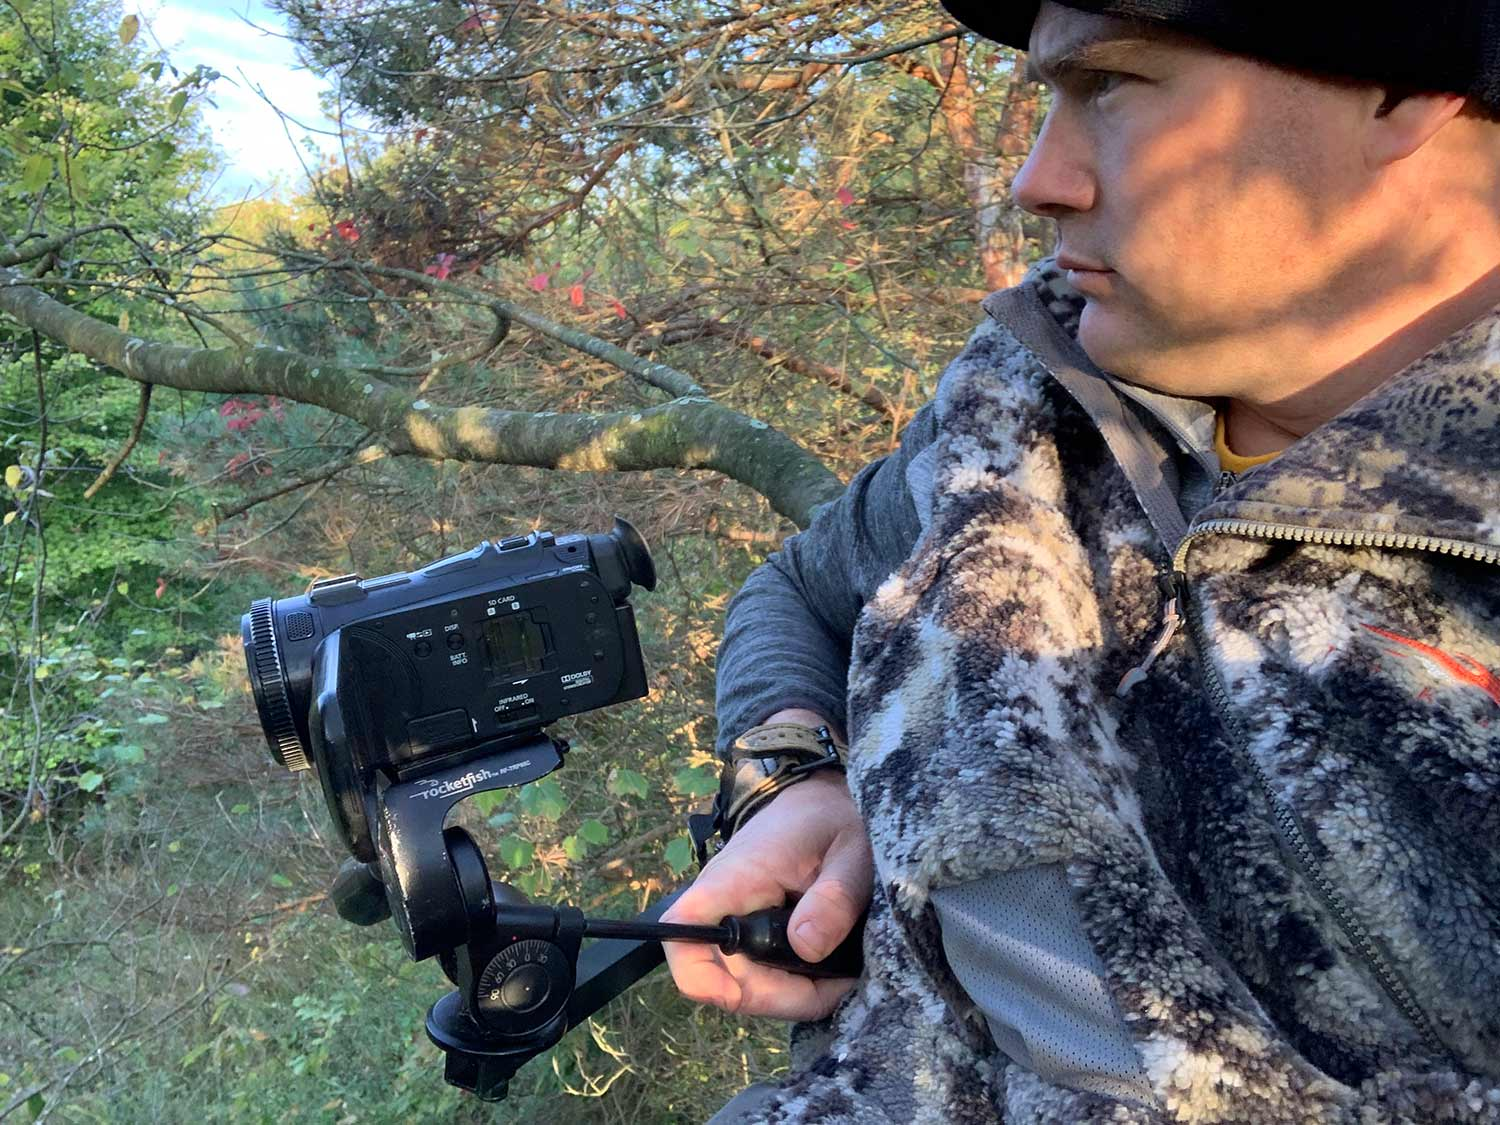 Hunter setting up a camera for a hunt